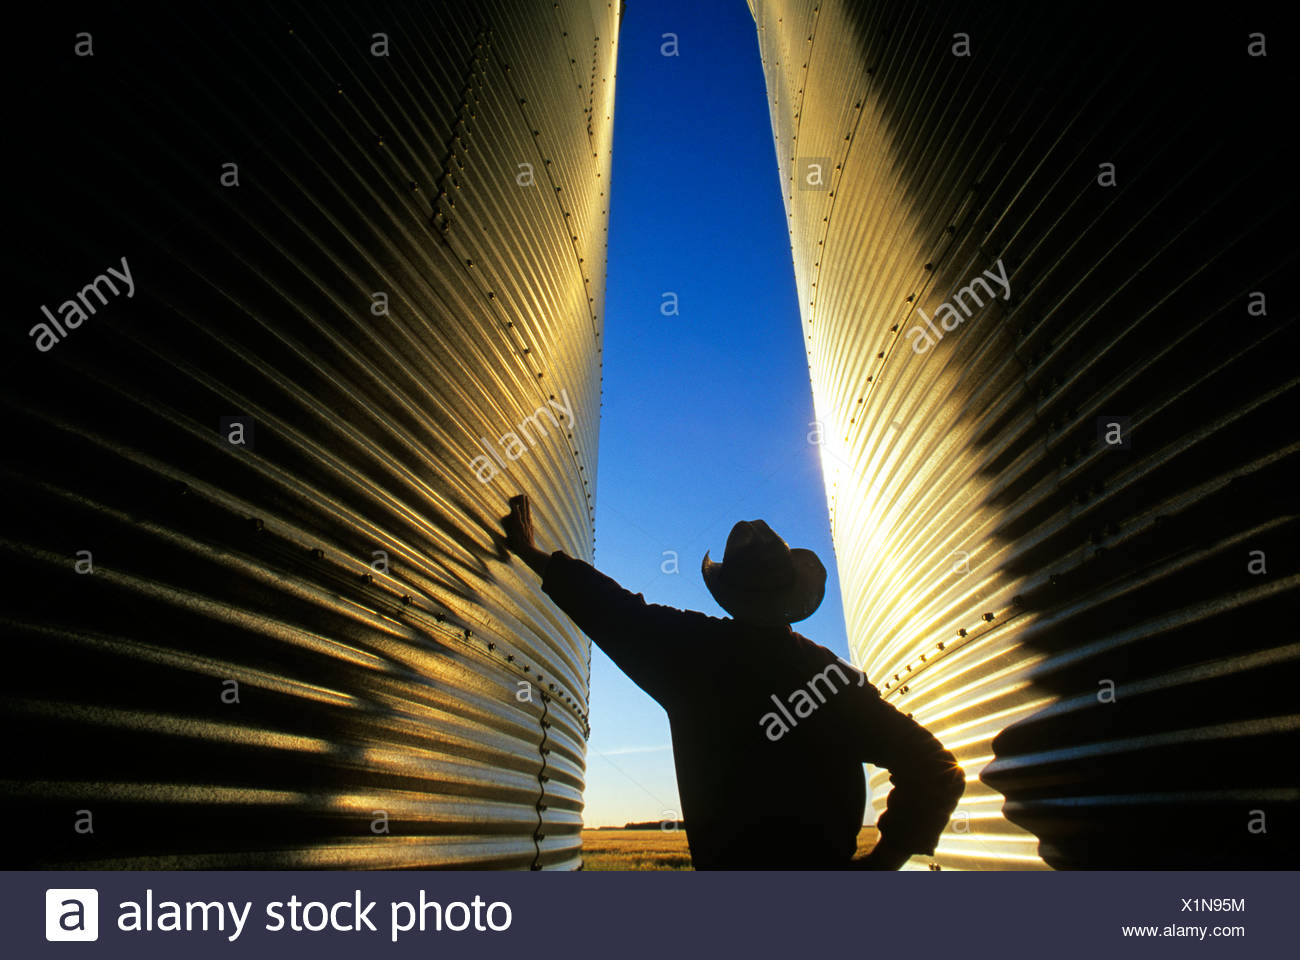 A farmer looks out over his field from his grain storage bins at sunset near Dugald, Manitoba, Canada - Stock Image